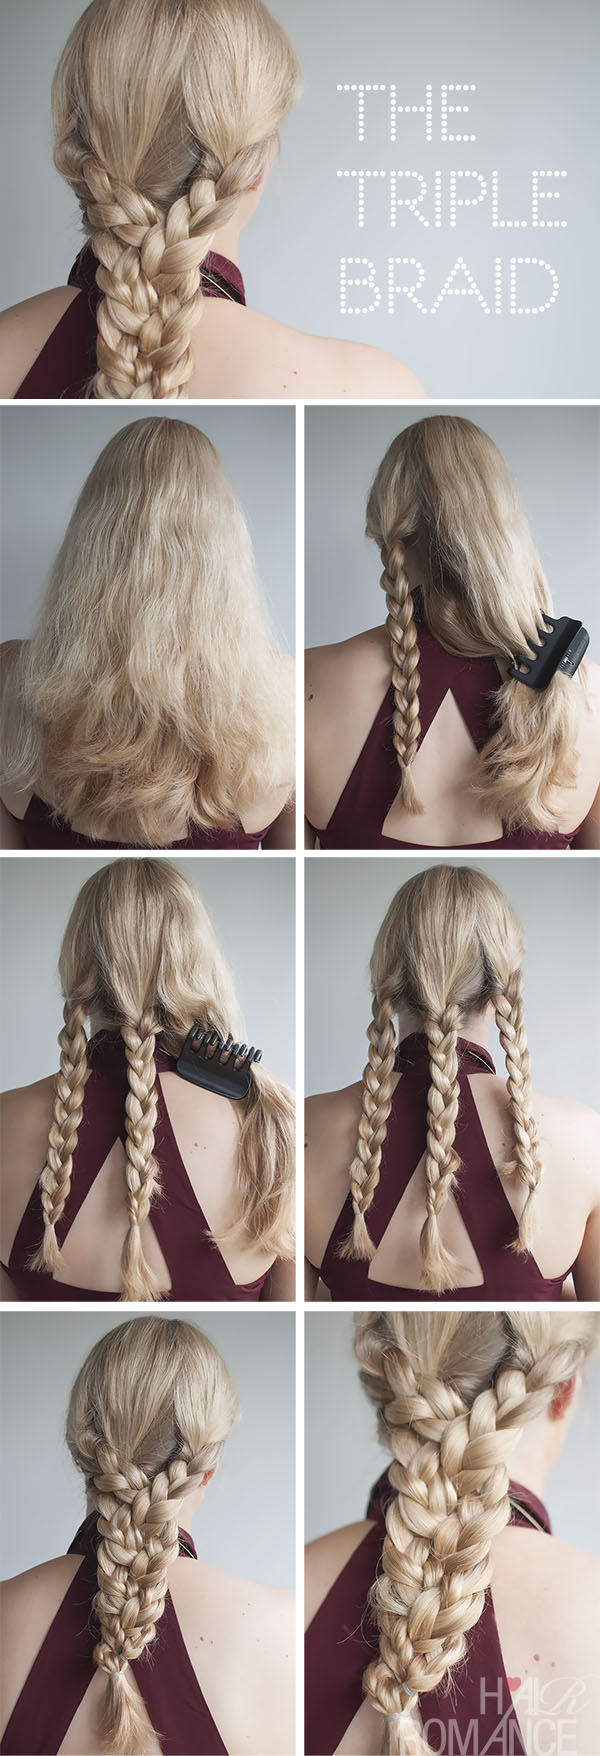 Hair Romance - triple braid tutorial